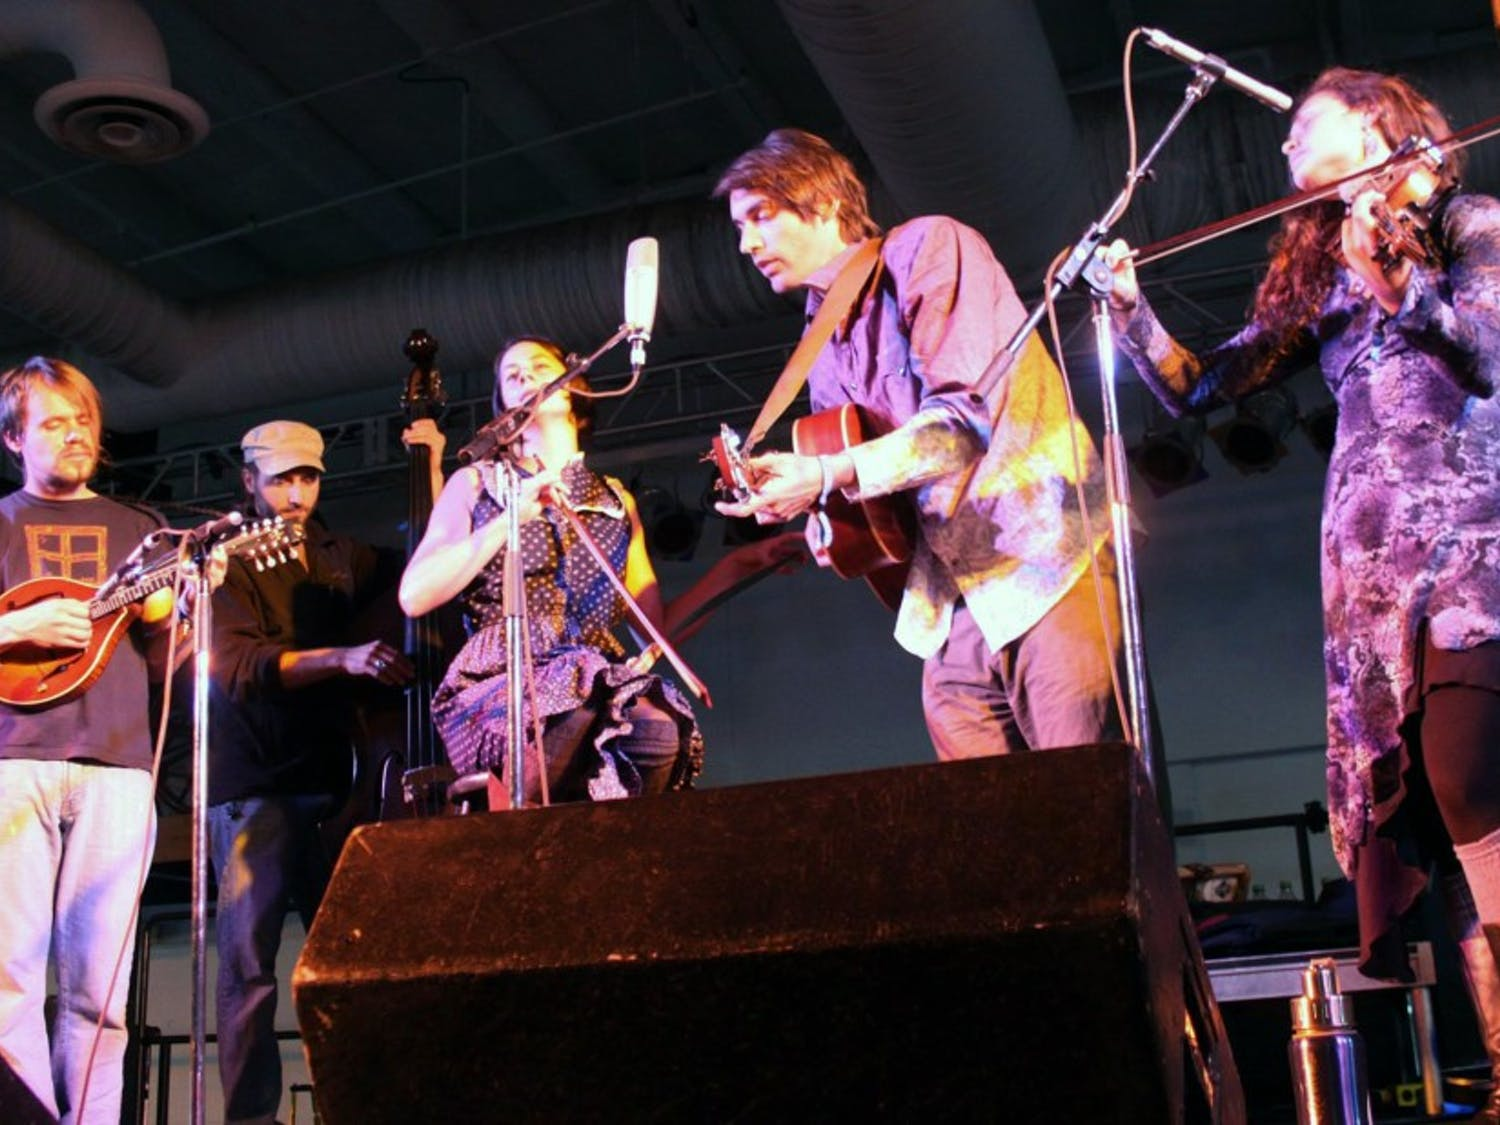 Colorado band Elephant Revival, whose new album came out in April, is influenced by many different musical genres.